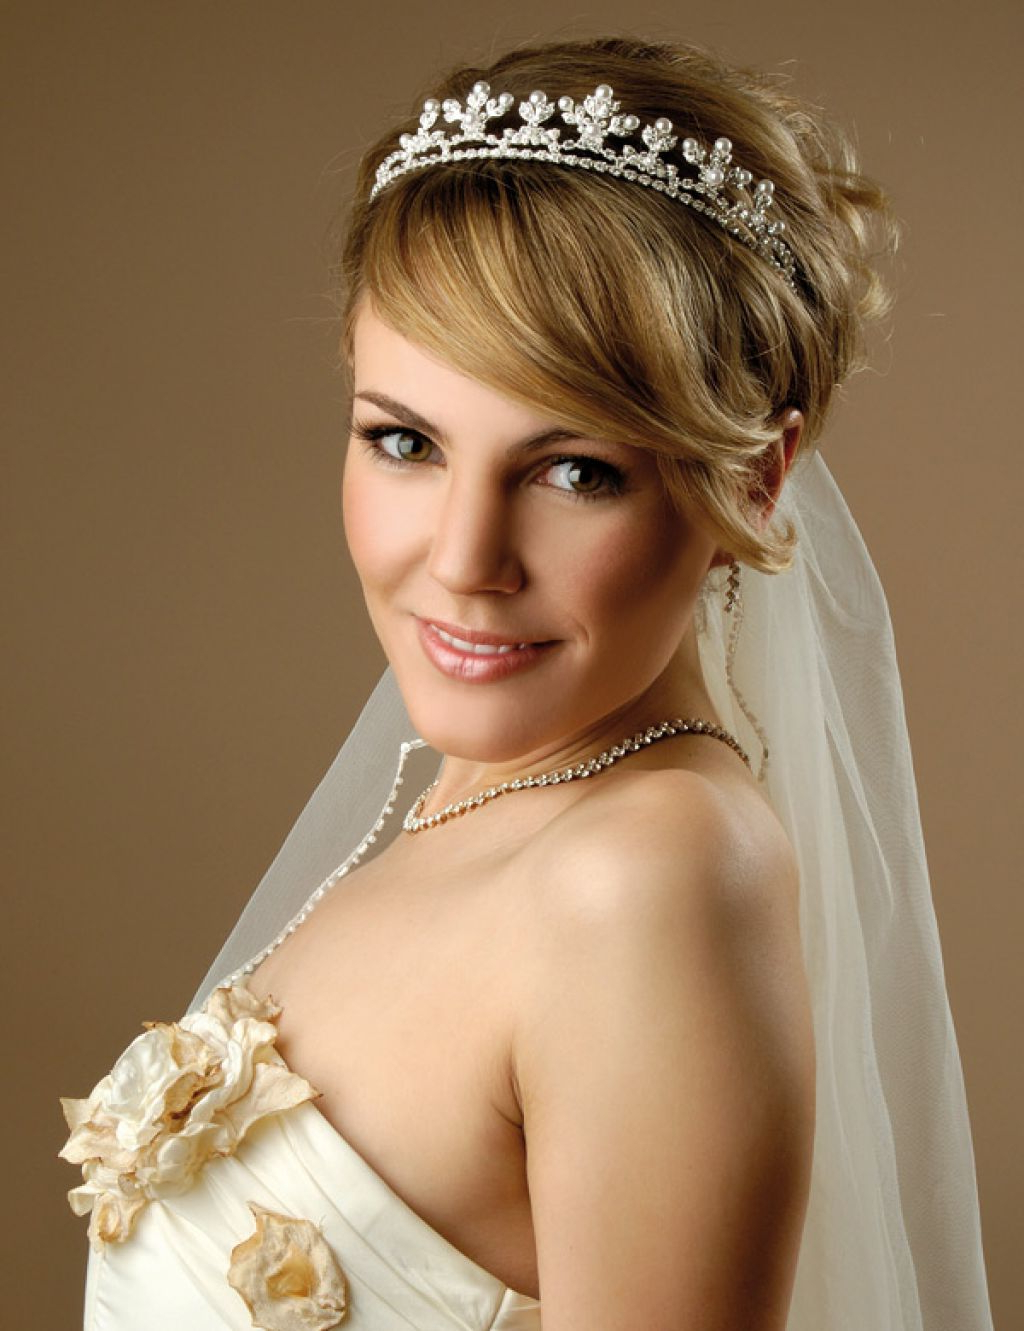 Short Bridal Hairstyles With Veil – Hairstyle For Women & Man Pertaining To Brides Hairstyles For Short Hair (View 9 of 25)